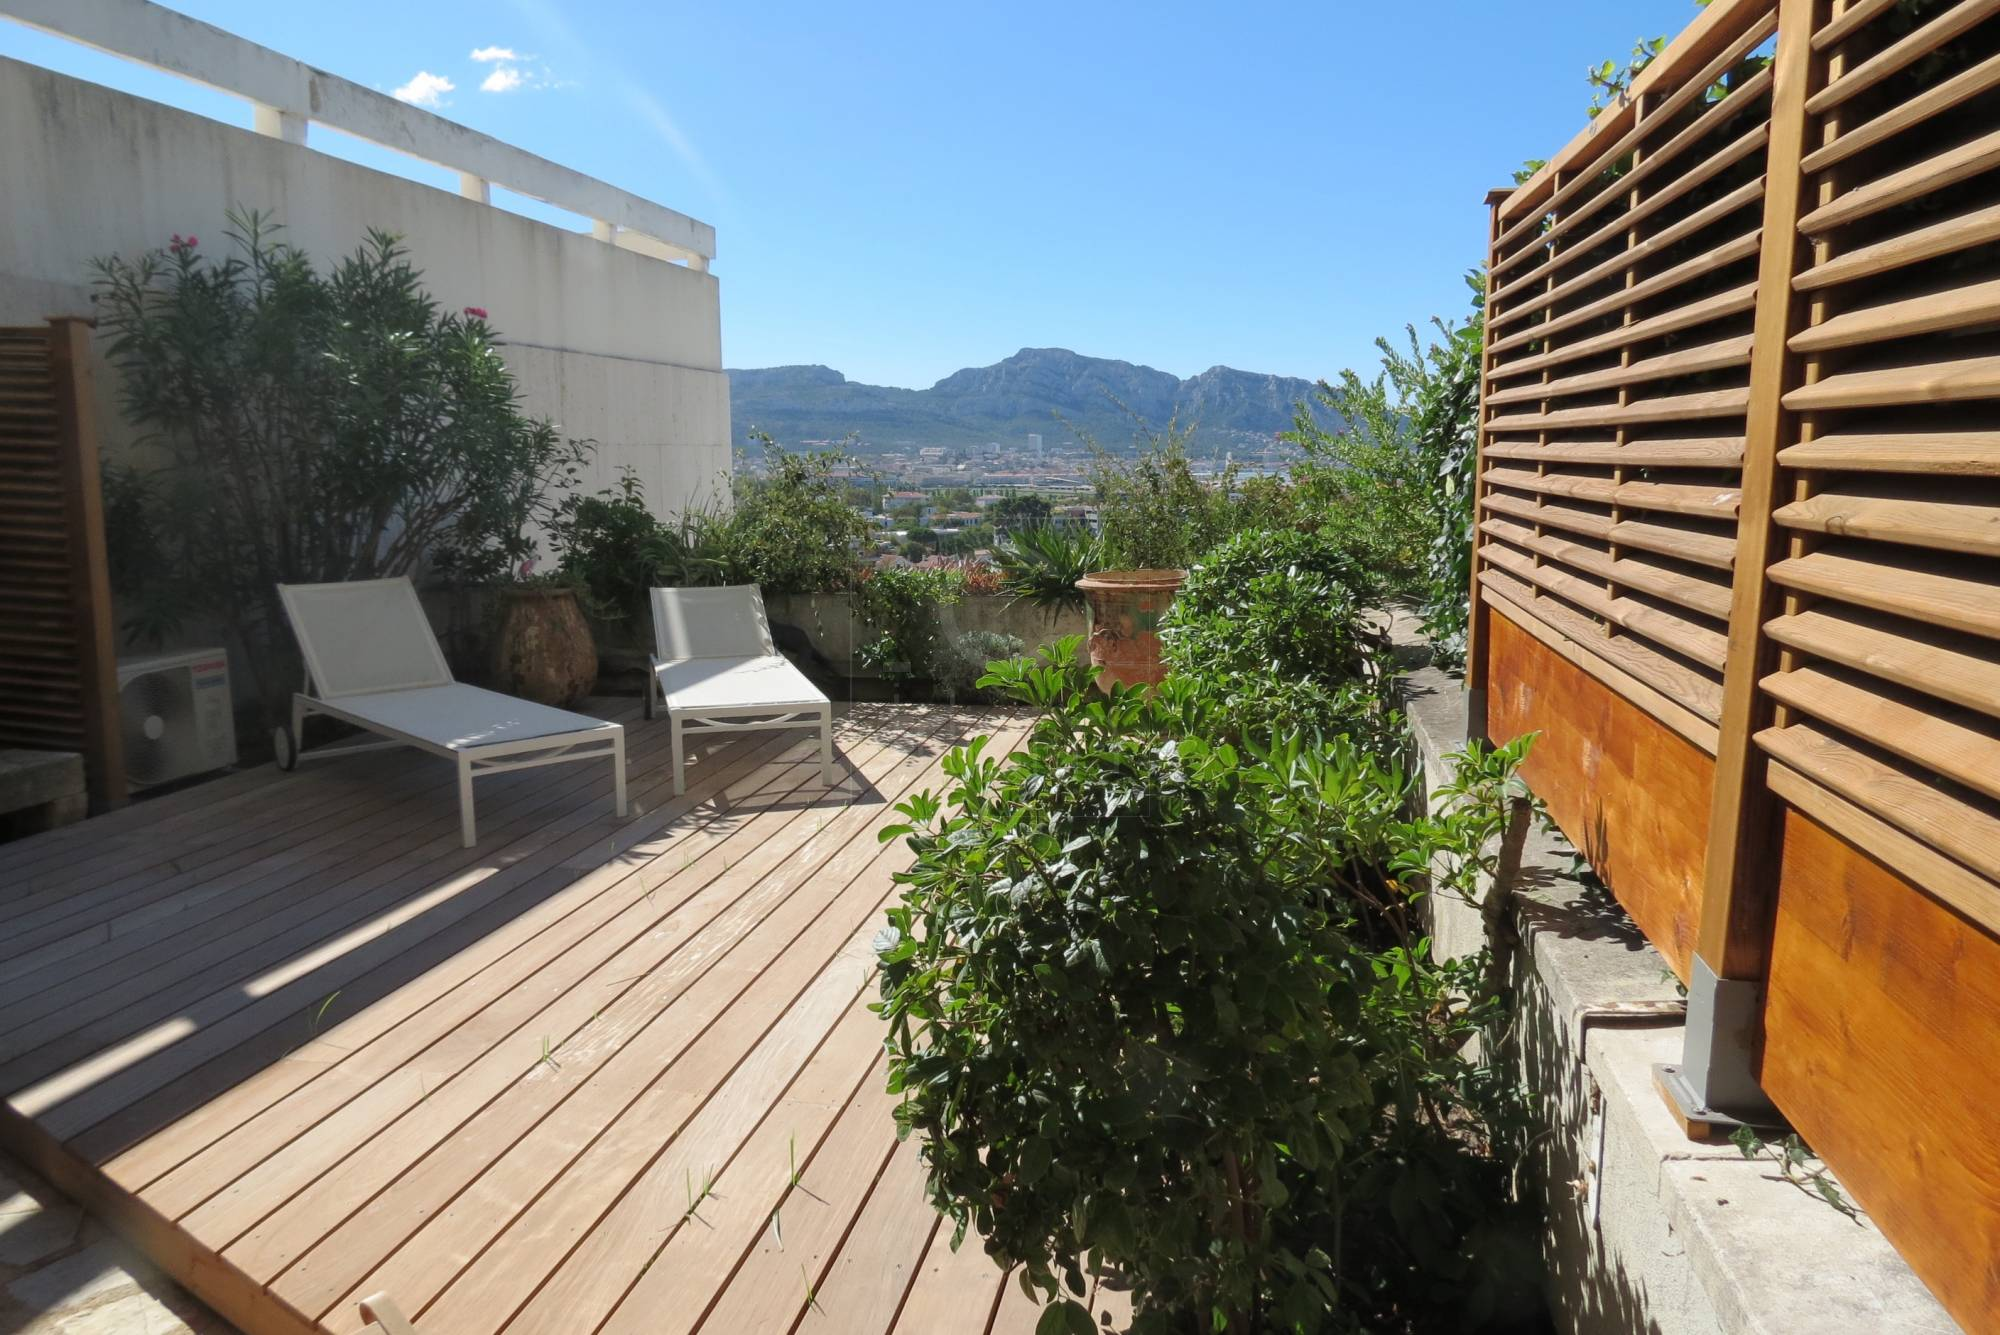 Vente appartement t3 f3 marseille 13008 thalassa cdt for Location appartement marseille terrasse